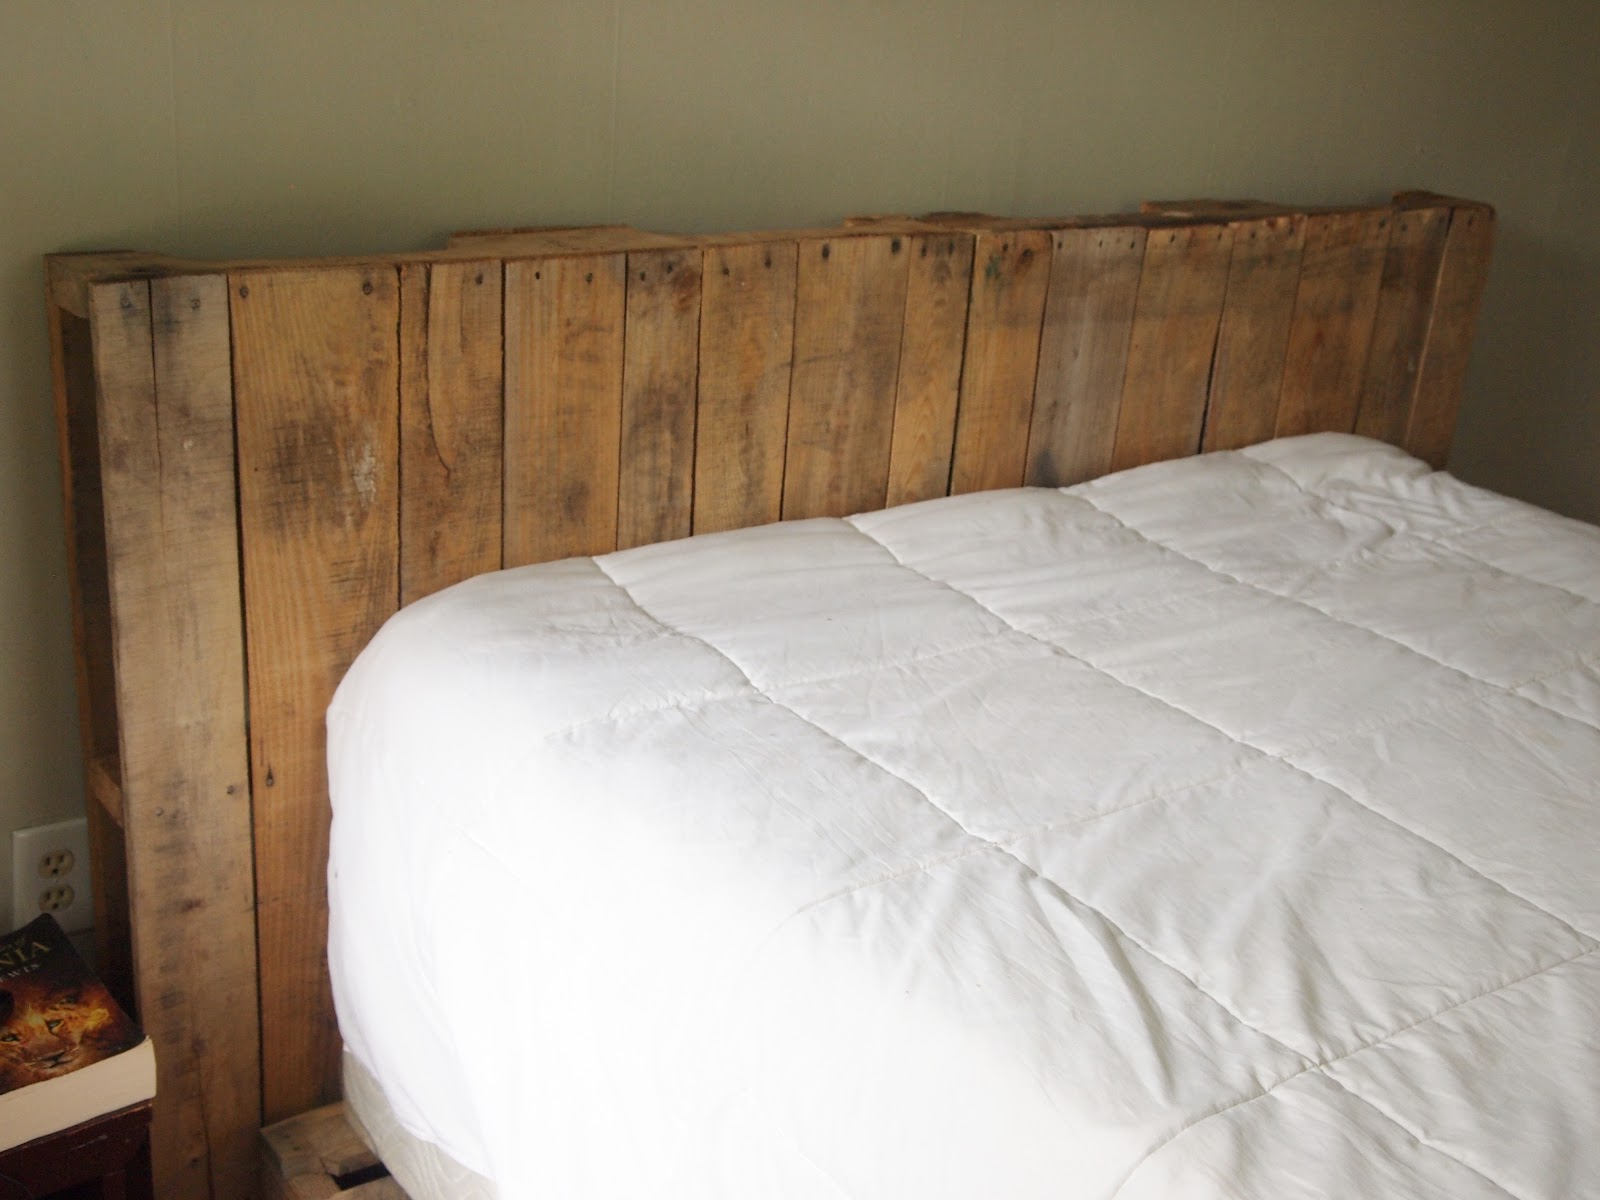 Making a Platform Bed Out of Pallets